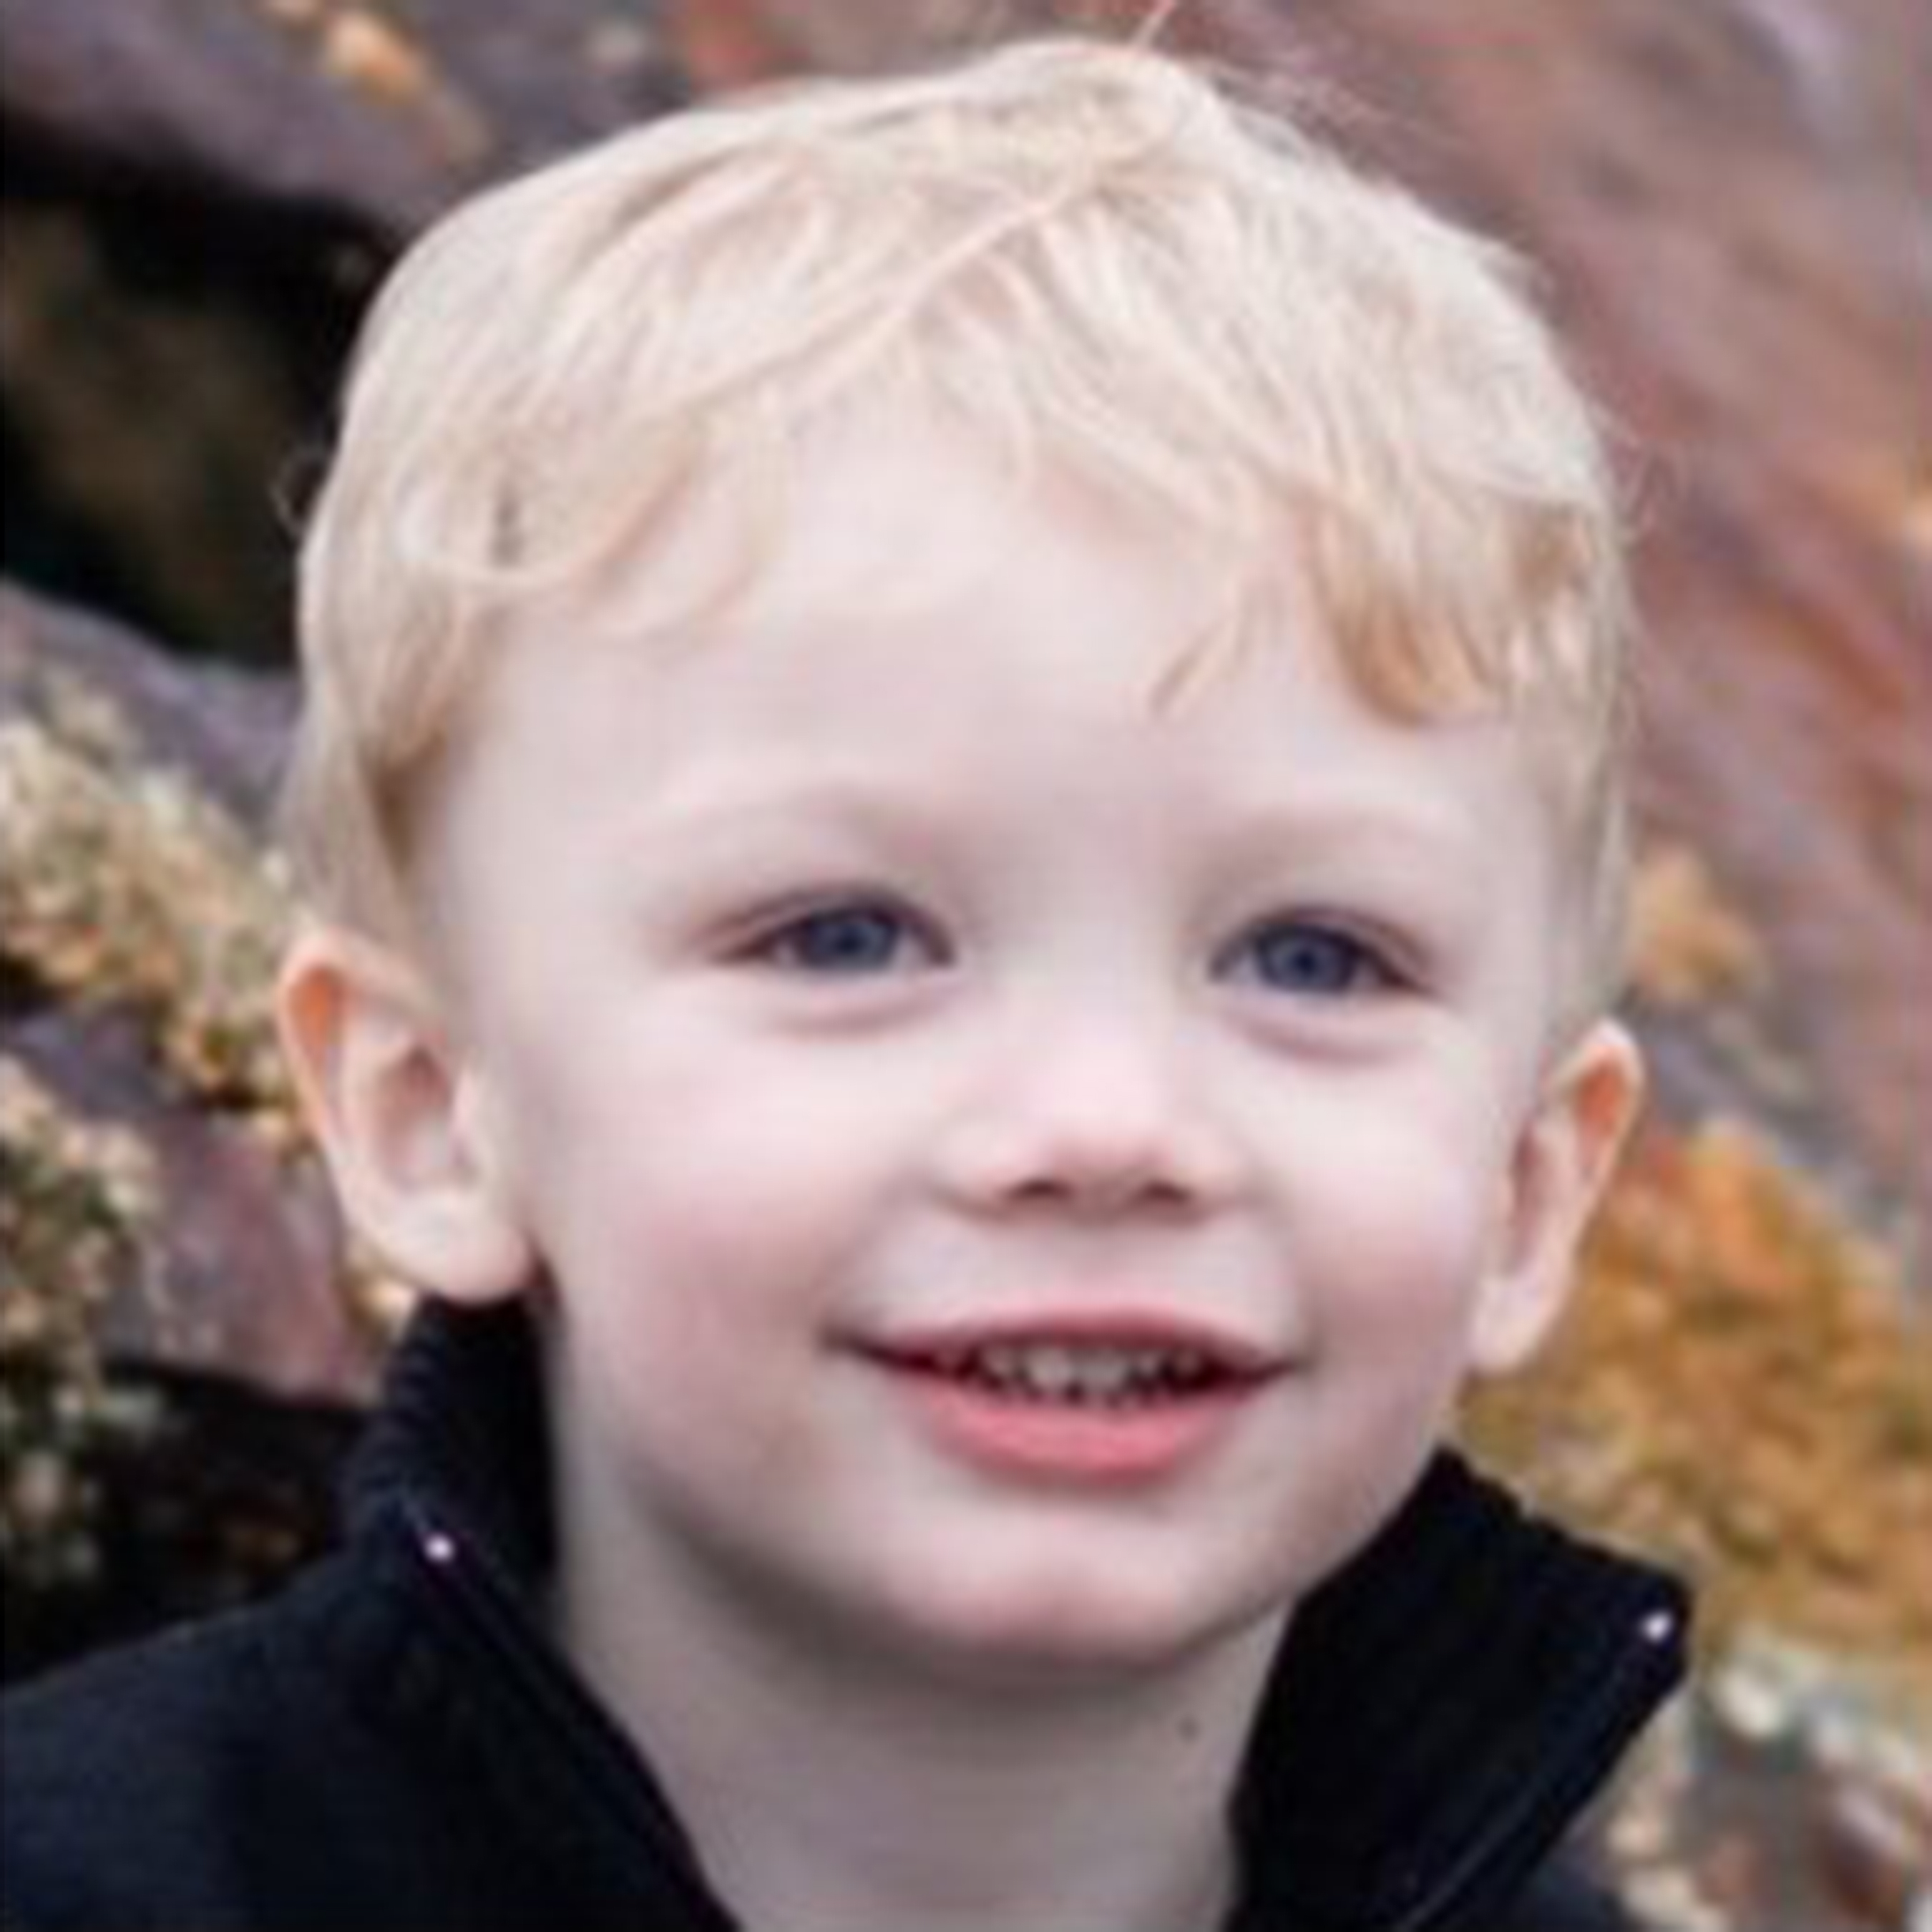 Oregon Mom and 3-Year-Old Son Have Been Missing for More than a Week